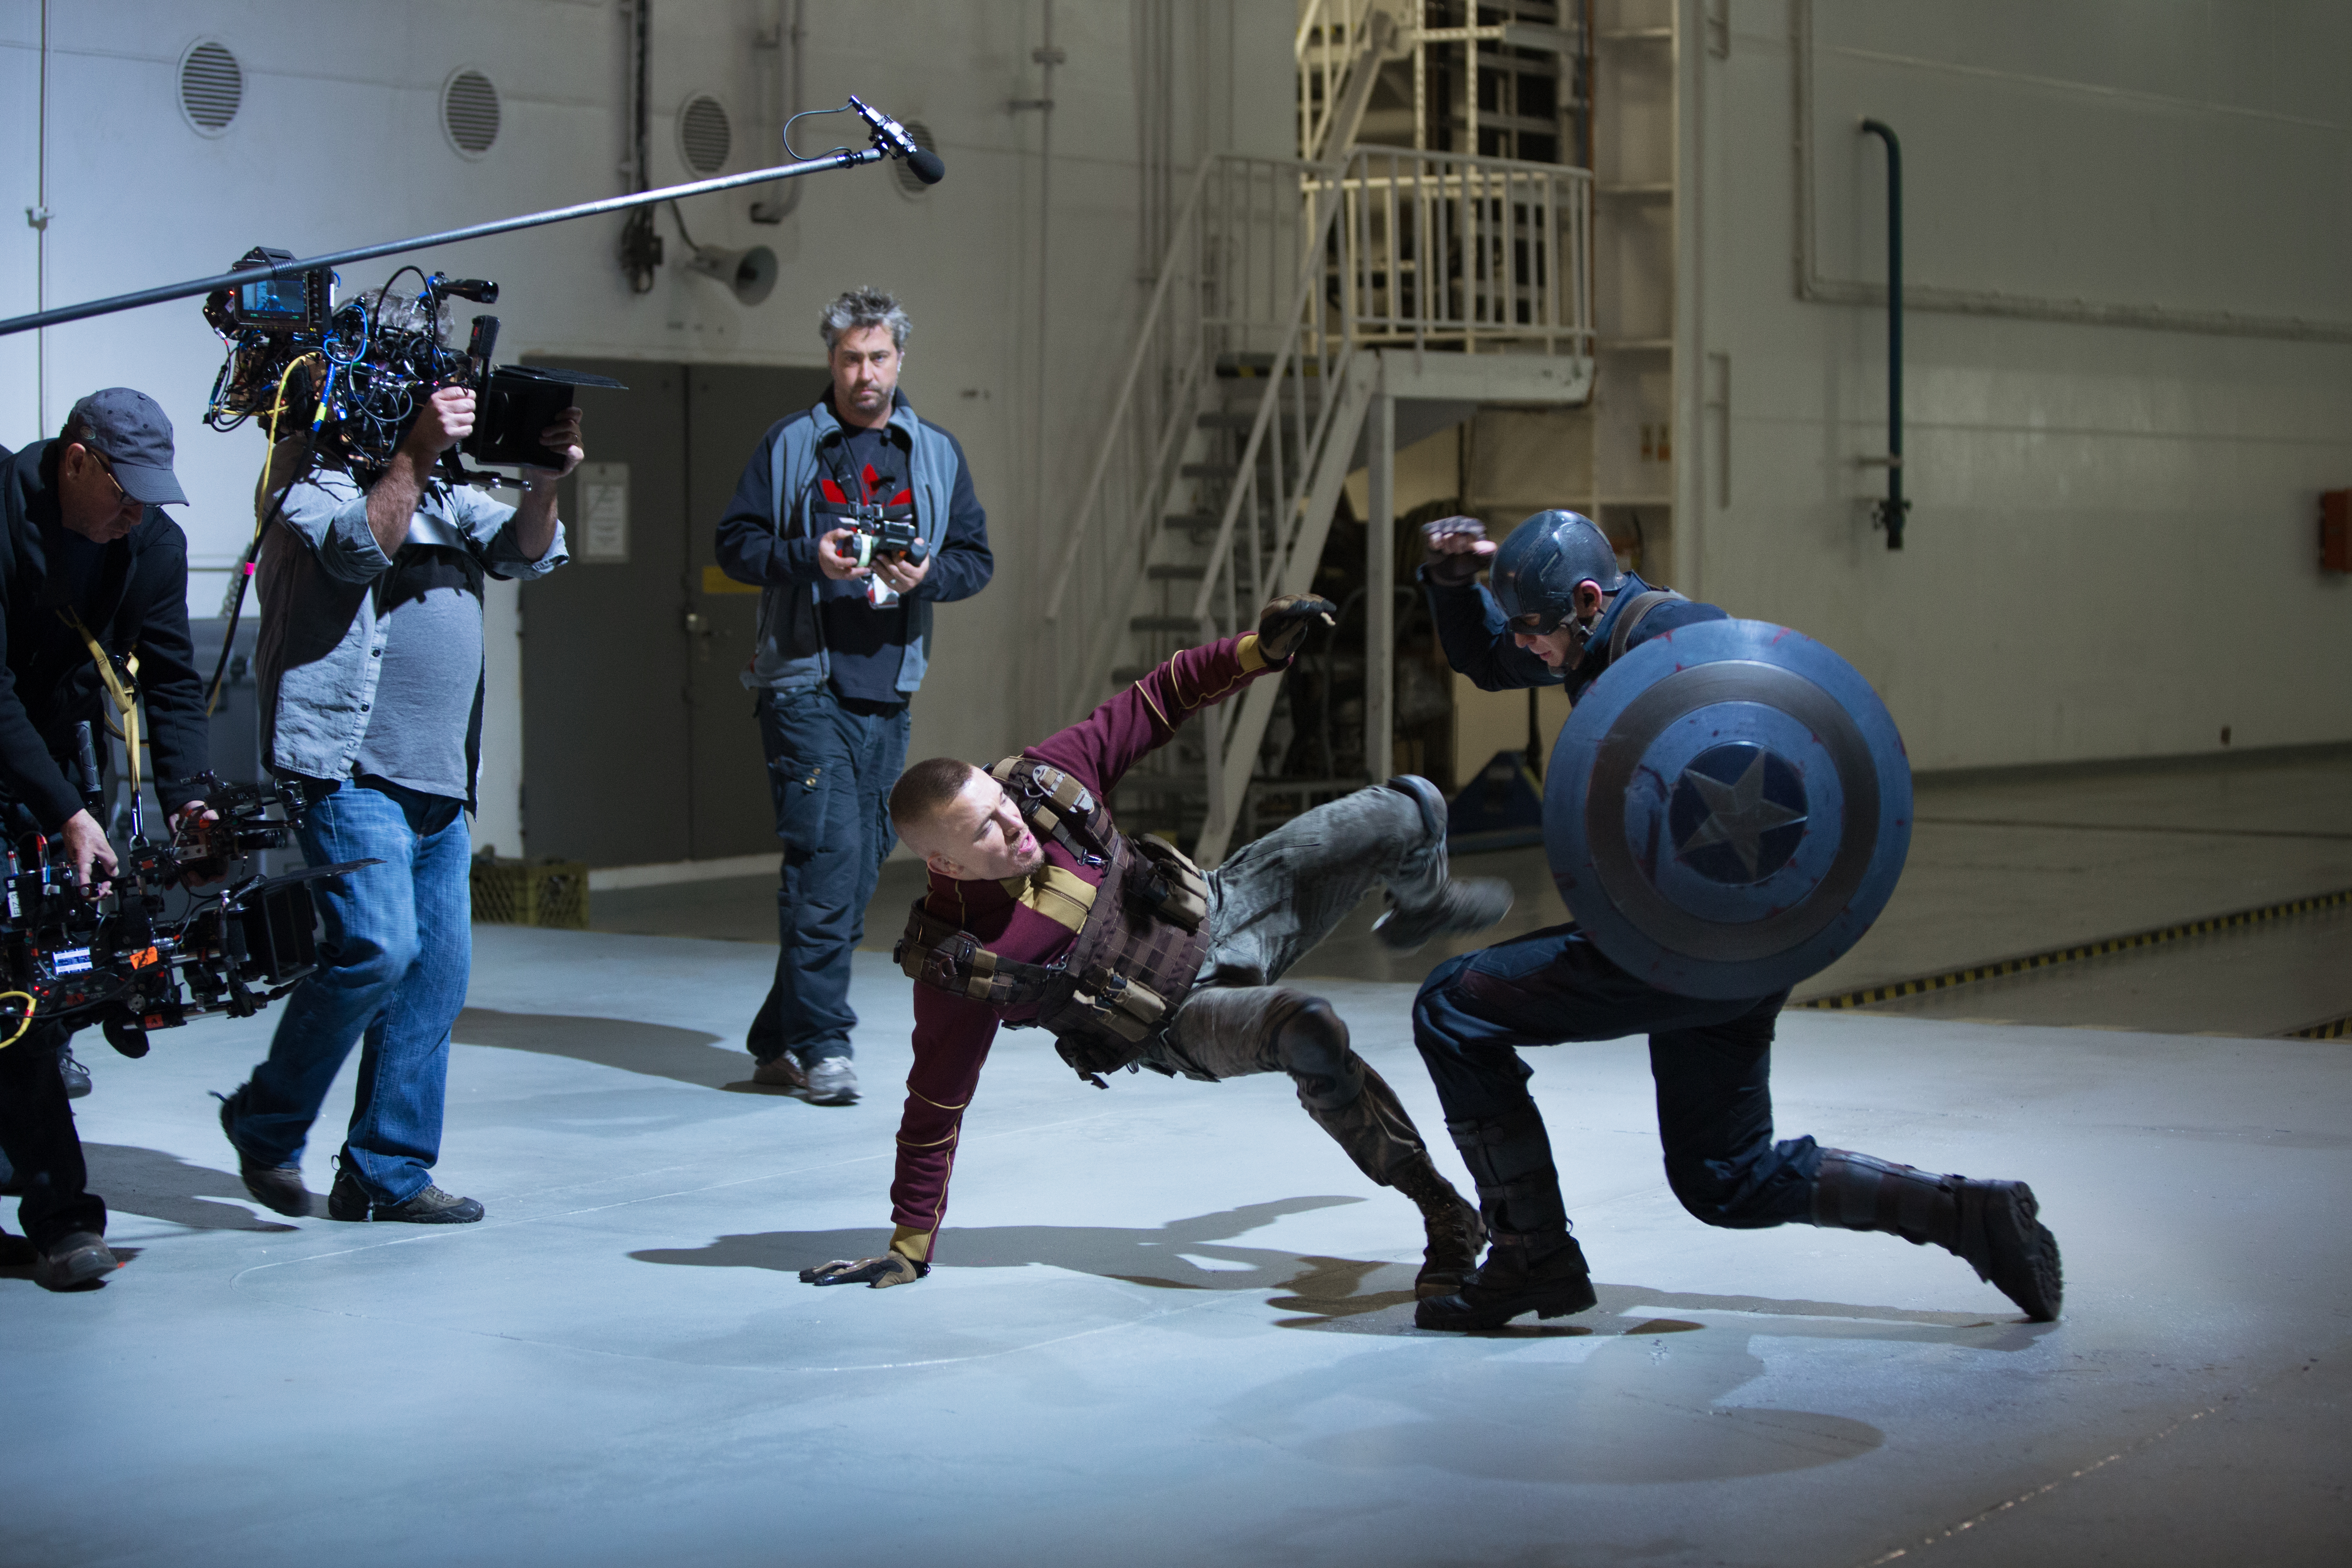 Captain America fights with Georges St-Pierre who plays the mercenary Georges Batroc.